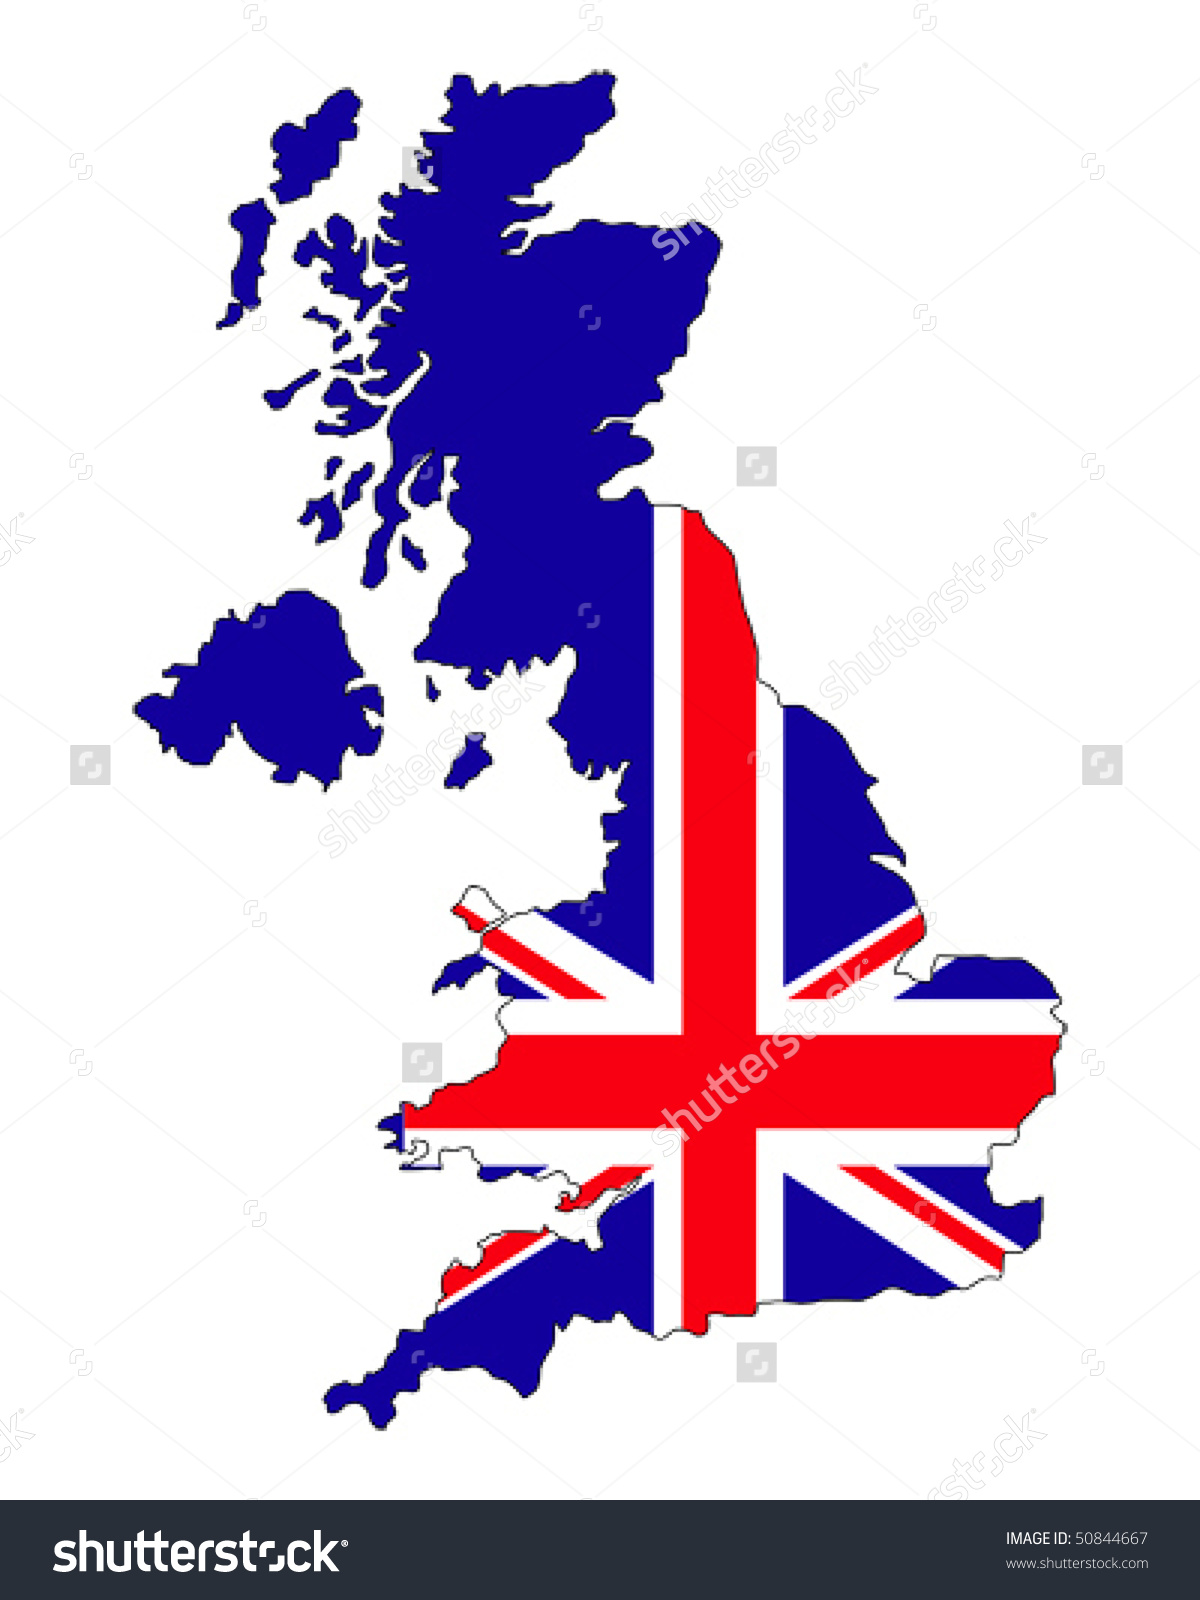 United kingdom map clipart banner freeuse stock Map Uk Filled Union Jack Flag Stock Vector 50844667 - Shutterstock banner freeuse stock